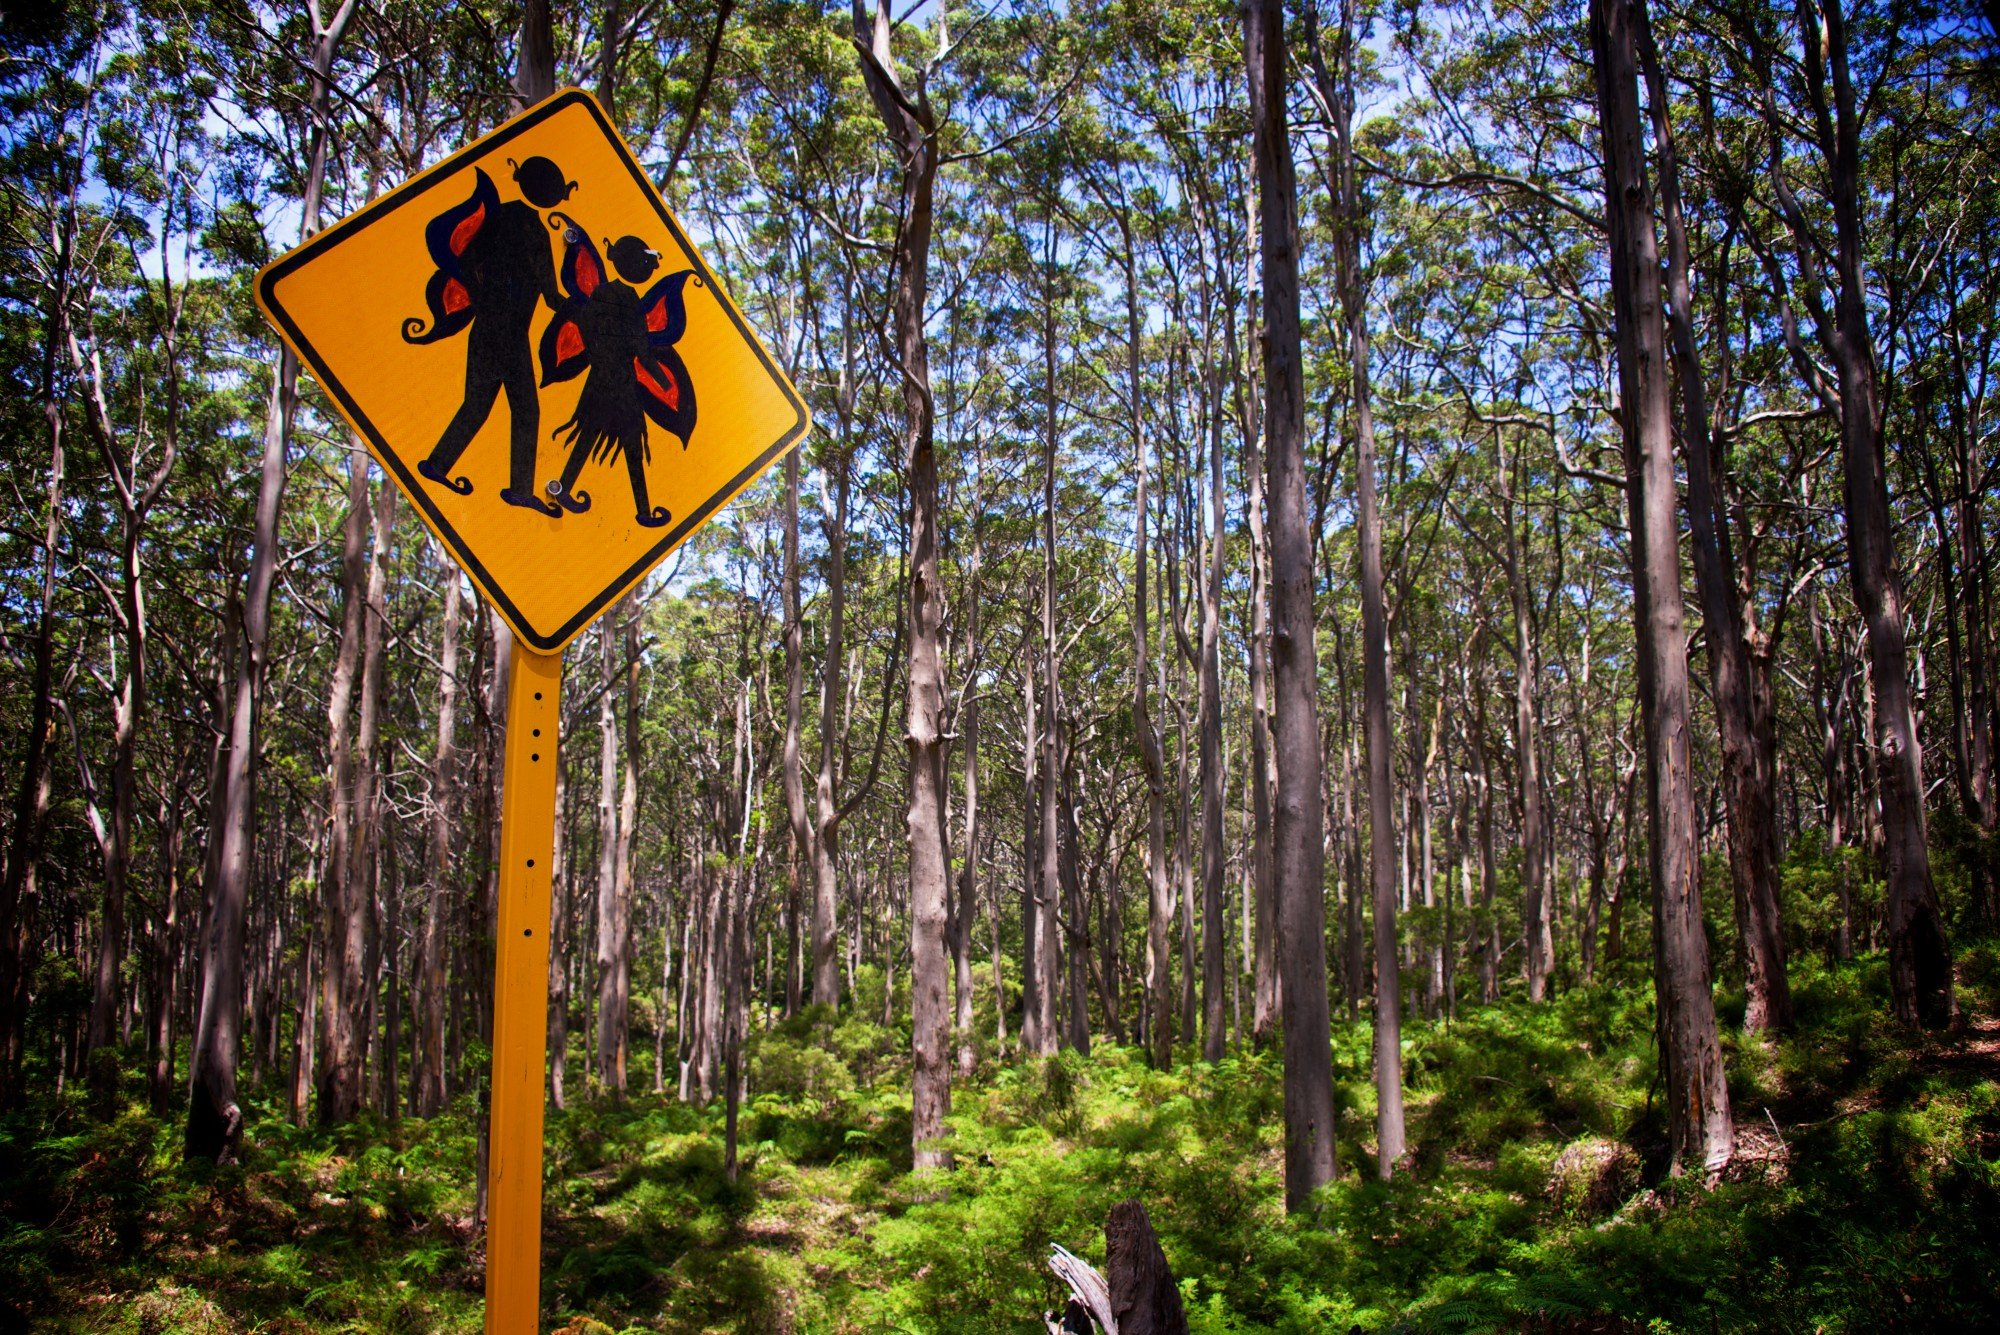 On the road from Perth to Sydney, We came upon this fairy forest… and a wit who changed the sign